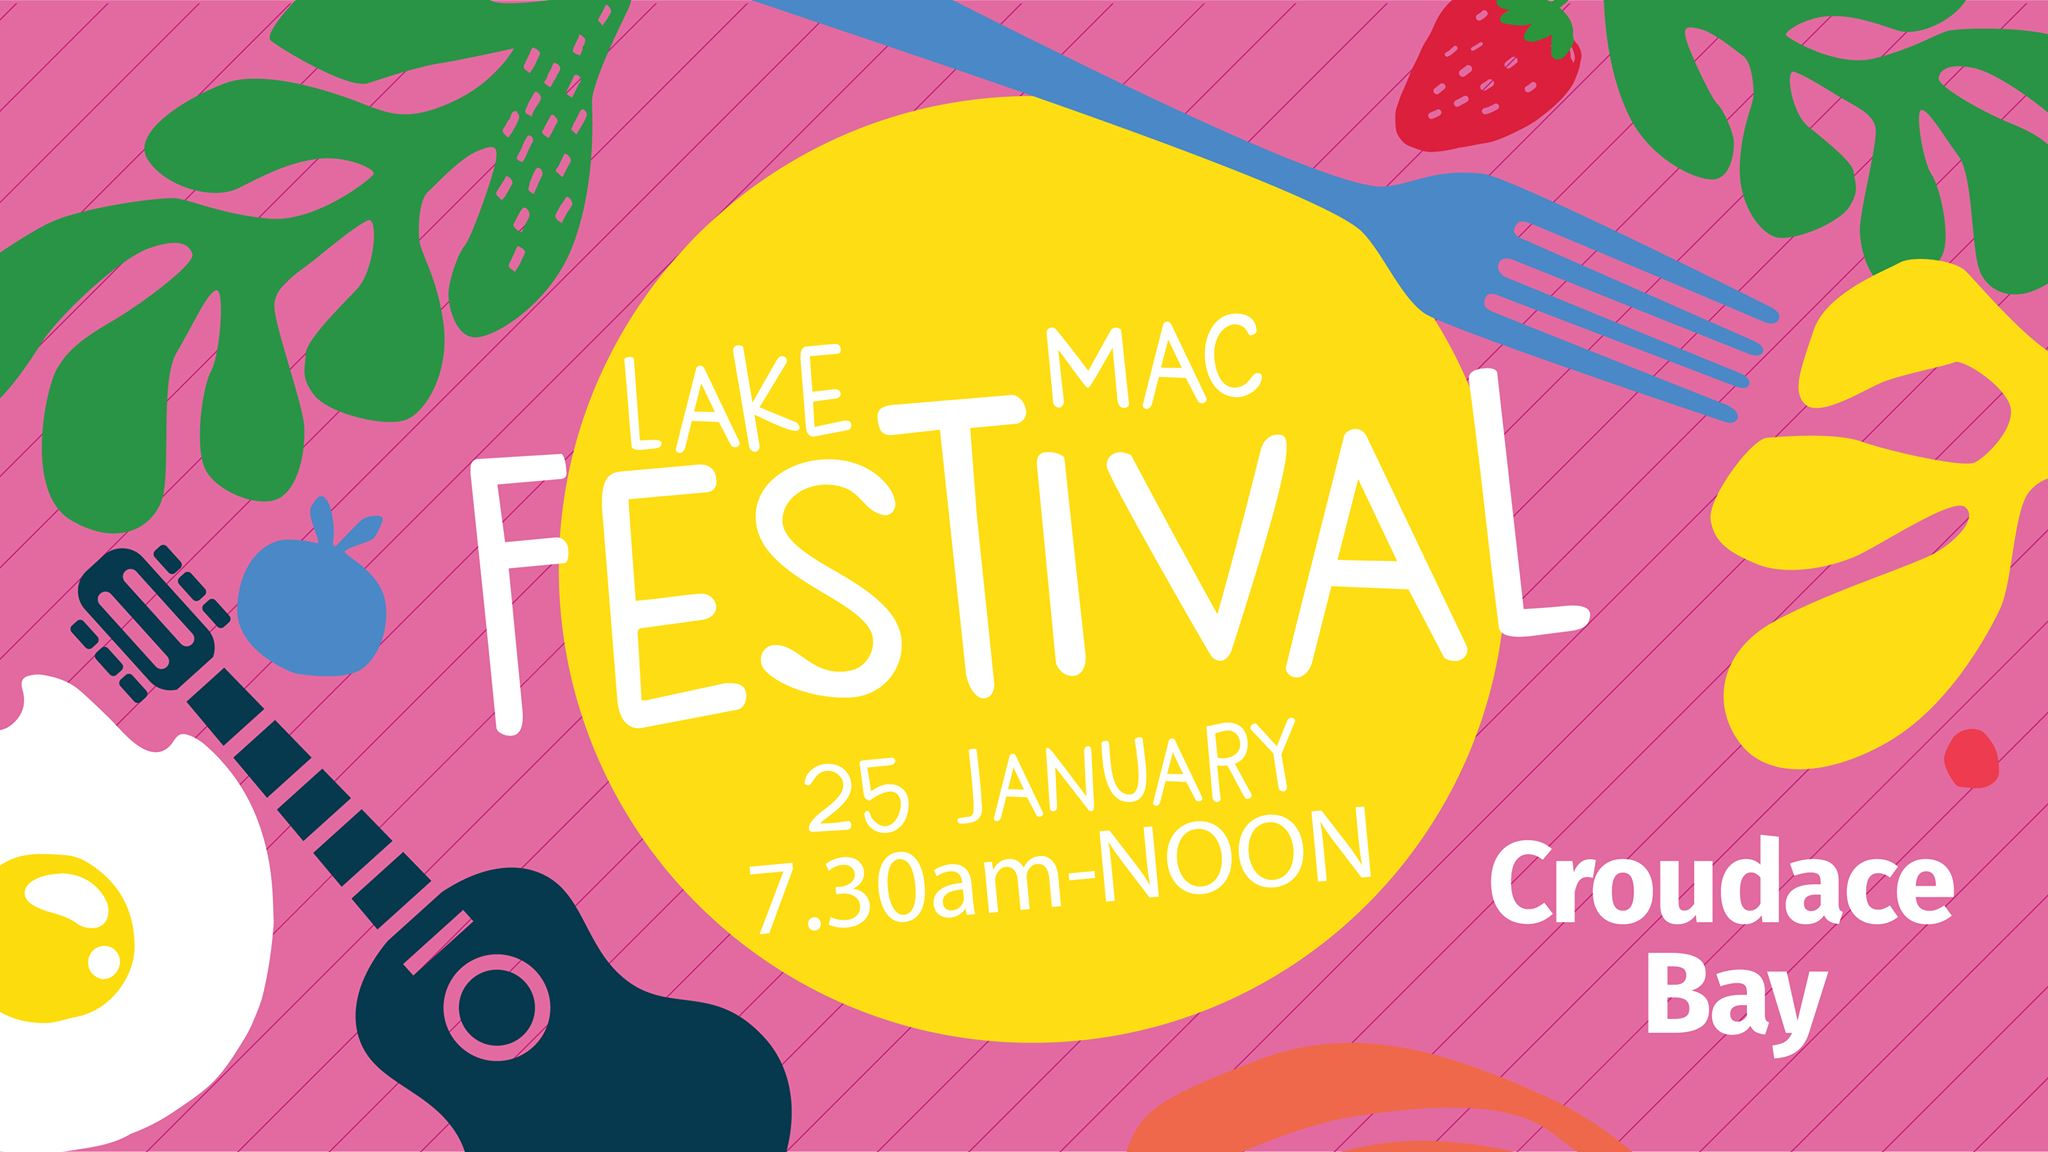 LAKE MAC FESTIVAL: Croudace Bay Free Family Breakfast and Fun Day